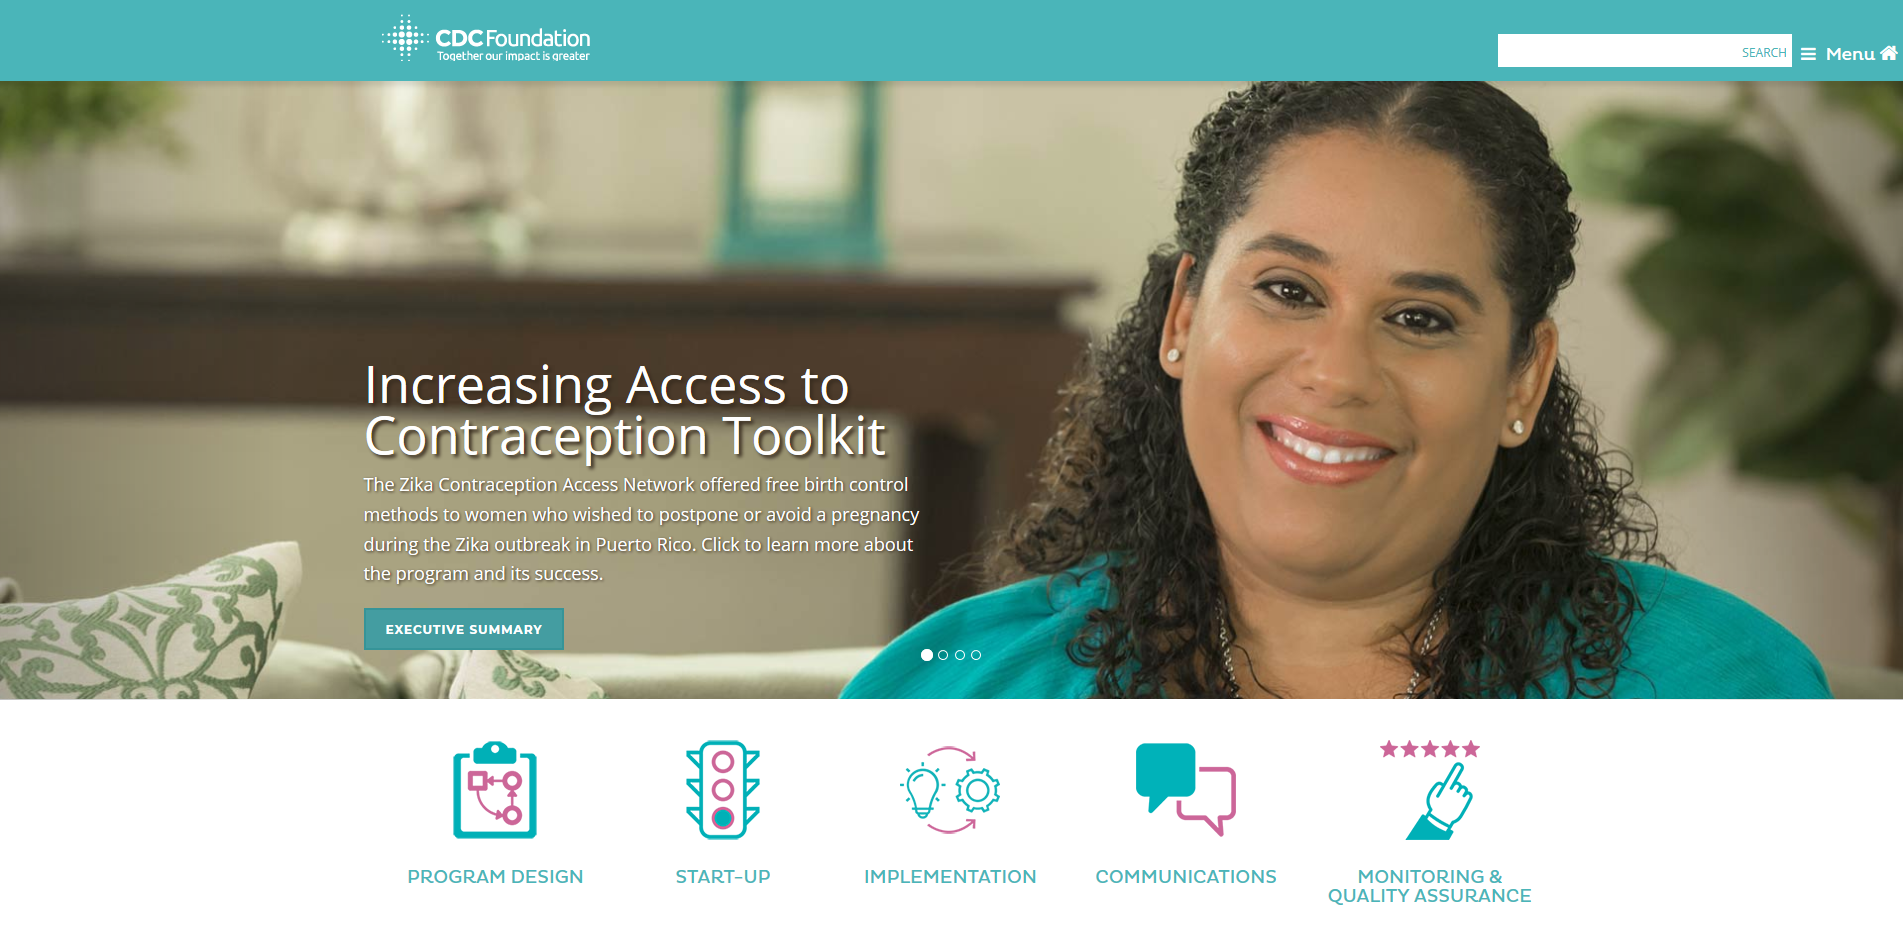 CDC Foundation Toolkit